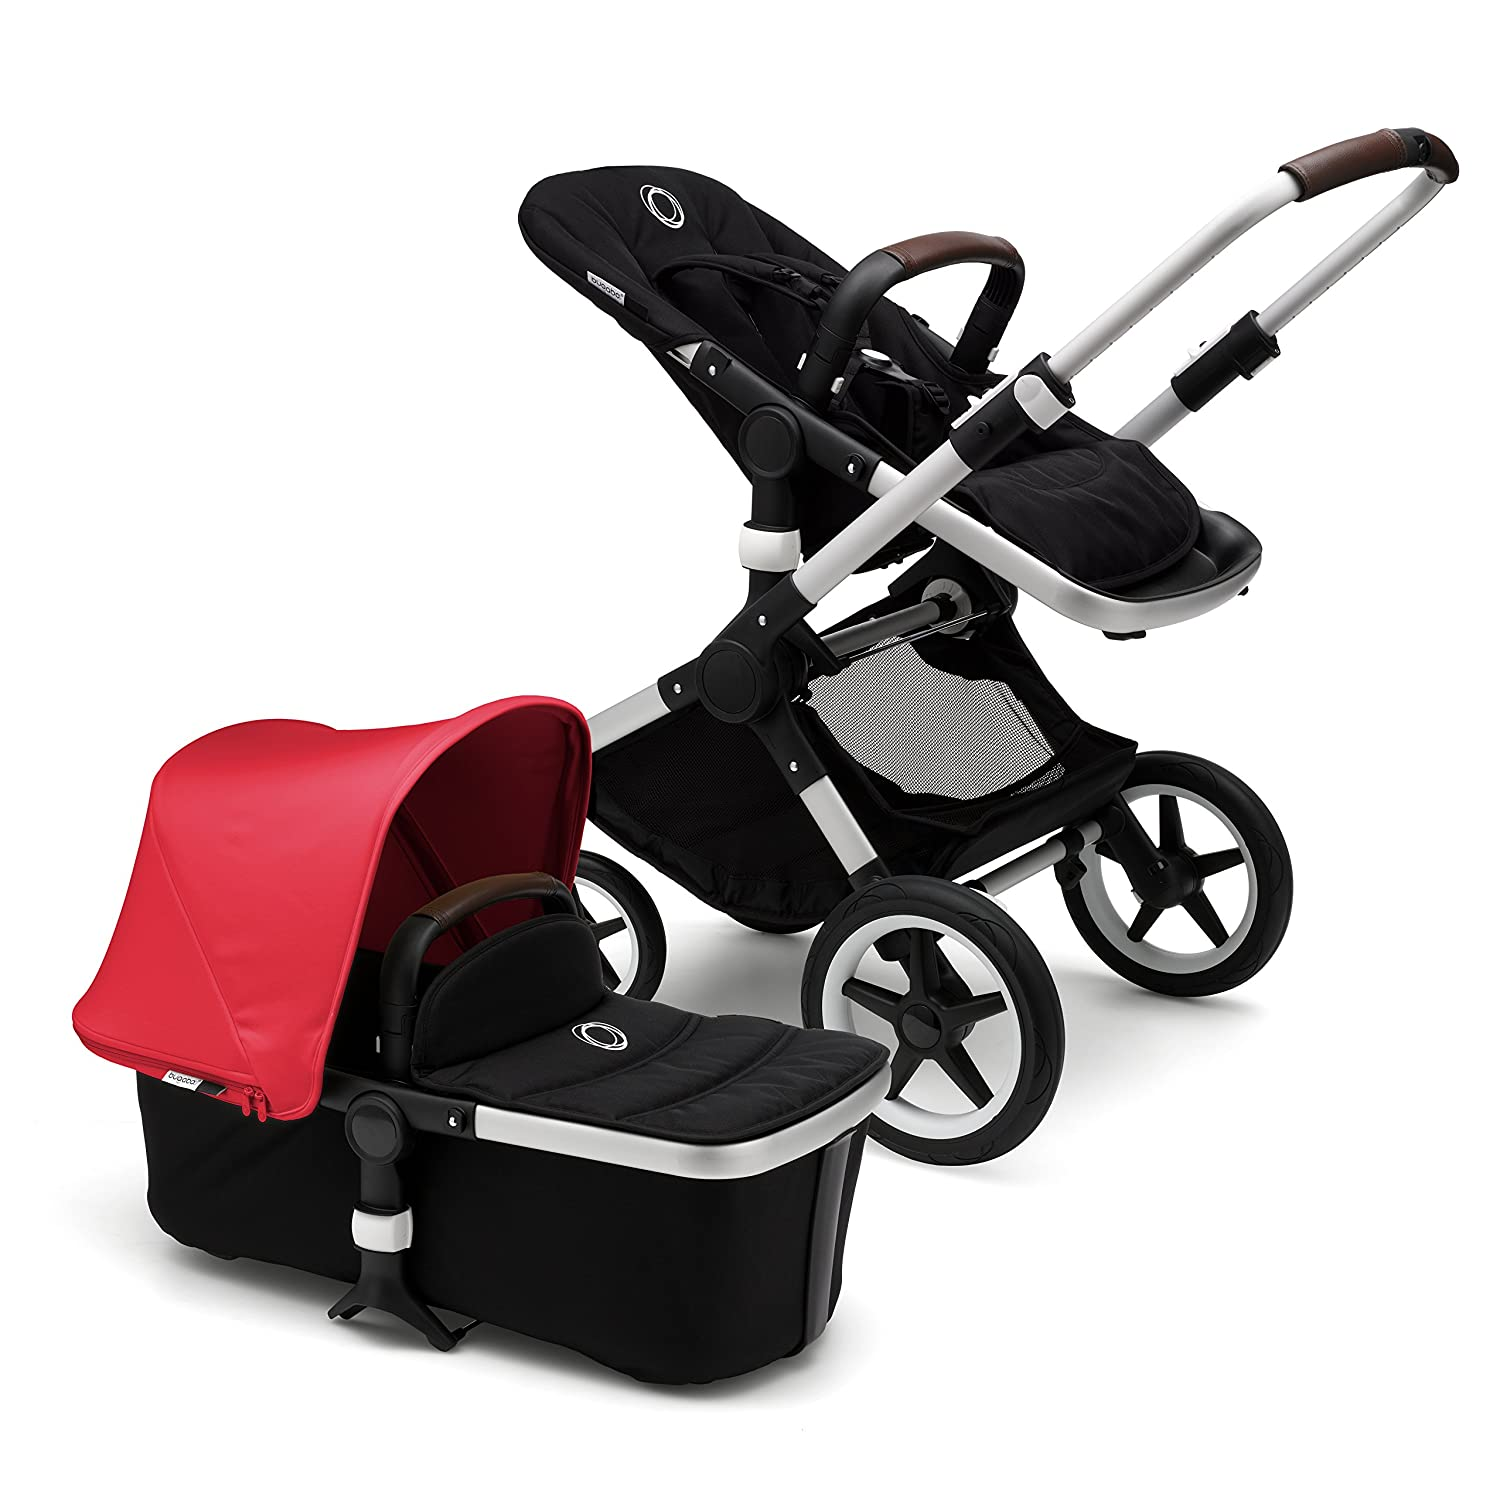 Bugaboo Fox Classic Complete Stroller, Alu/Grey Mé lange - Fully-Loaded Foldable Stroller with Advanced Suspension and All-Terrain Wheels 231170AE01